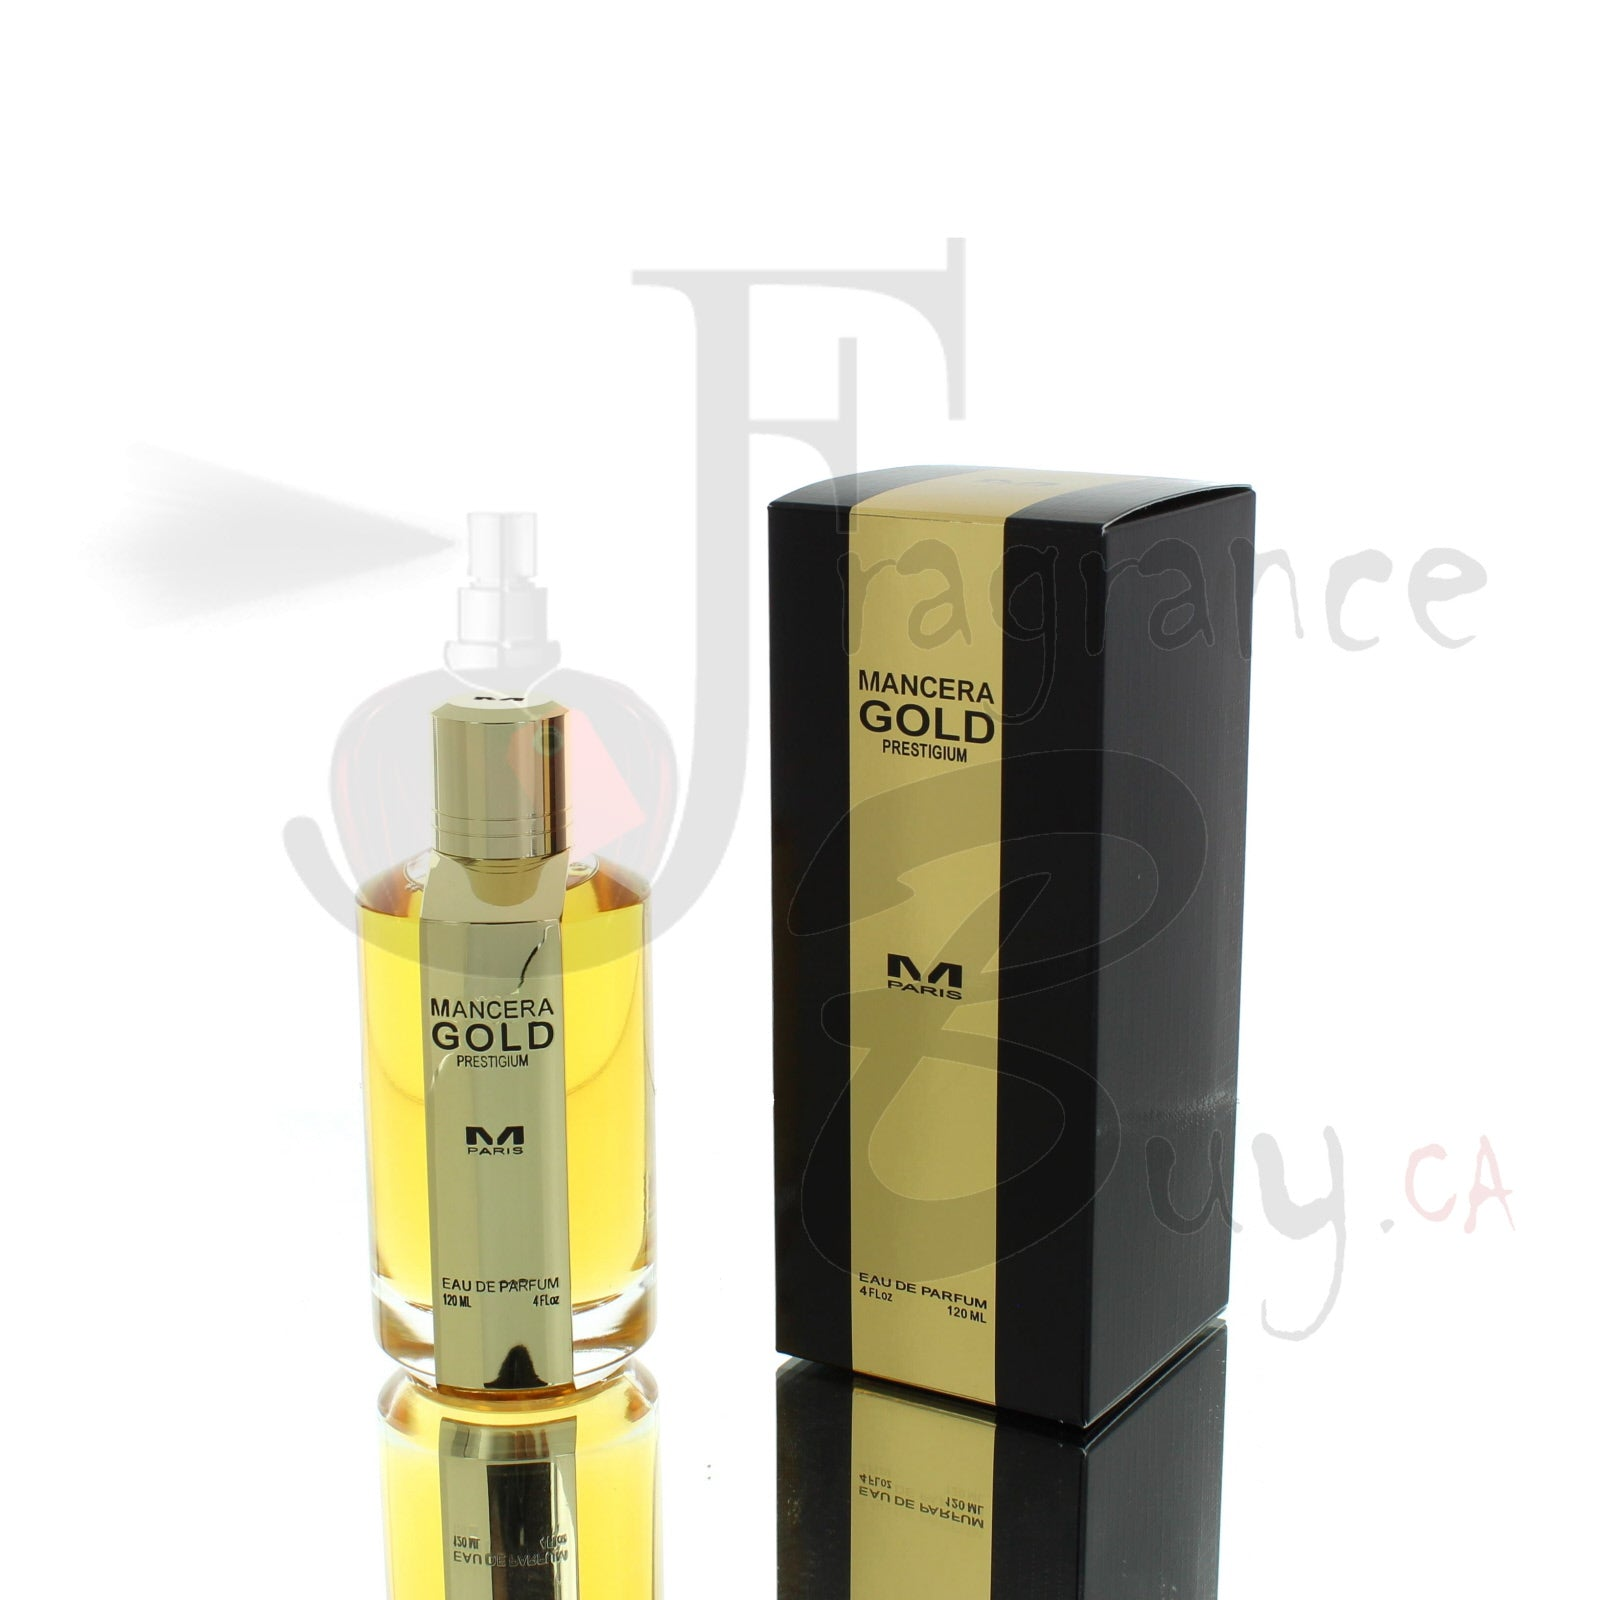 Mancera Gold Prestigium For Man/Woman